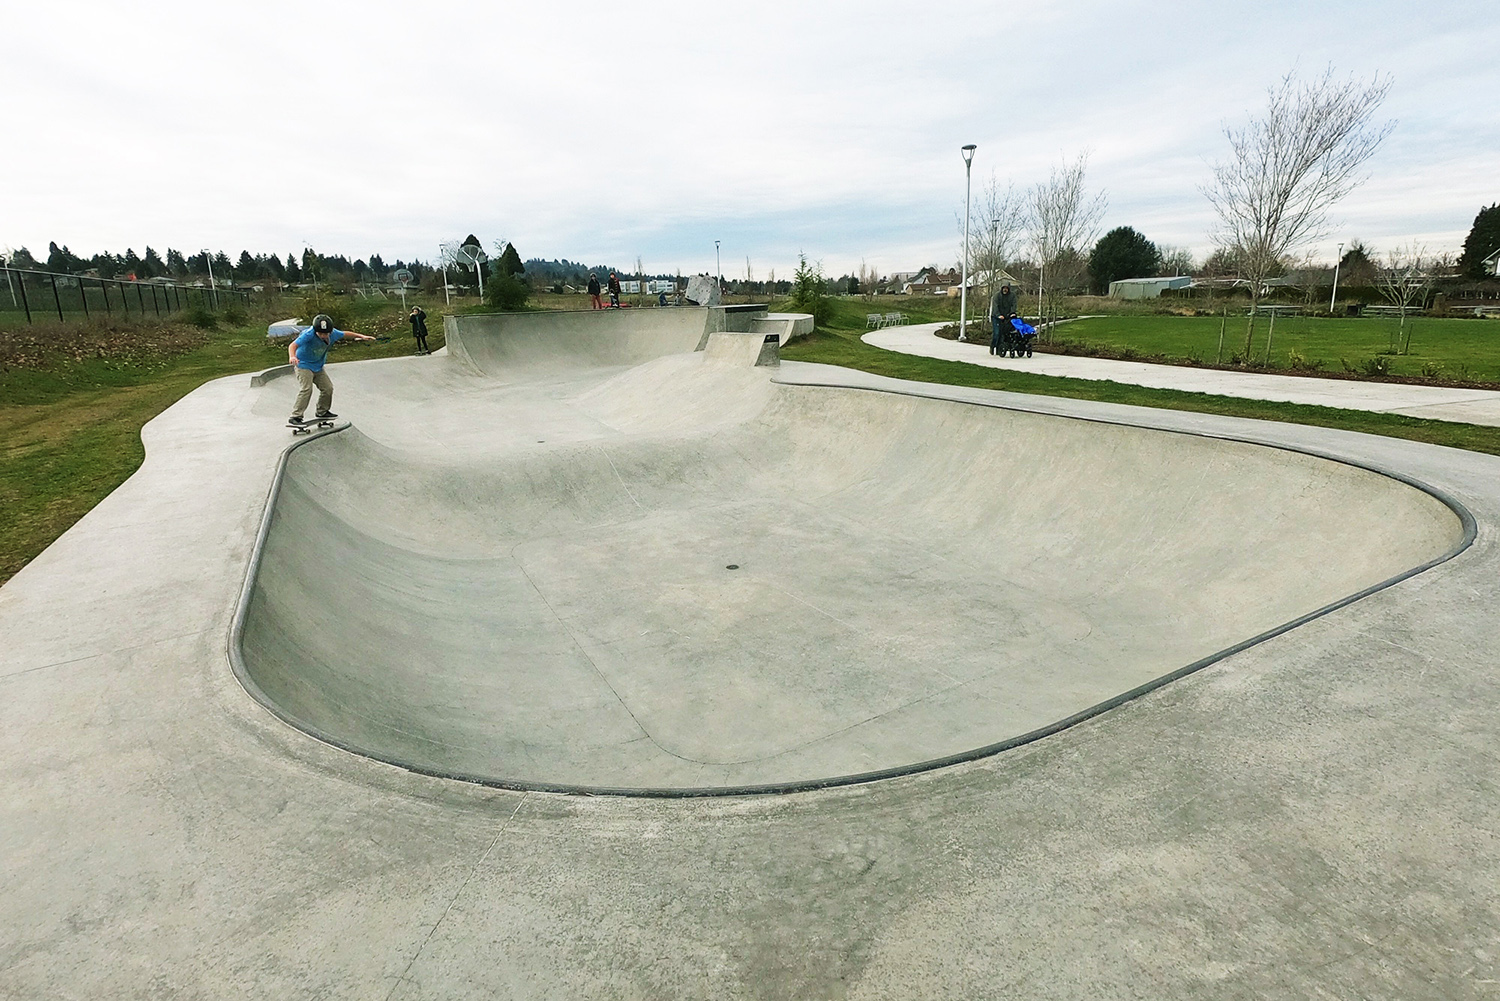 The four-foot bowl section of the Luuwit Skate Spot.